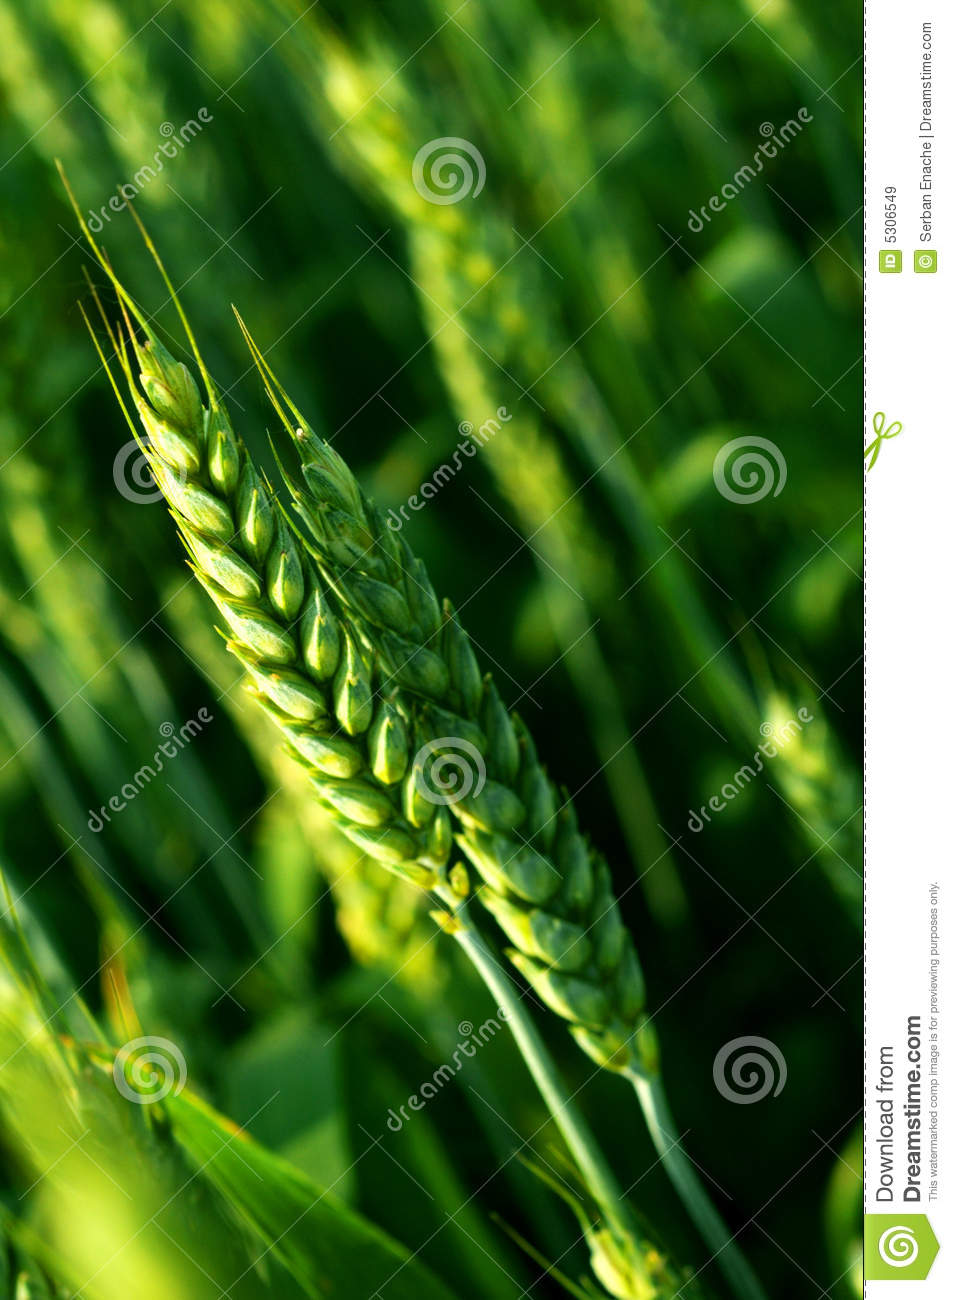 Download Close up of wheat stem stock image. Image of grassy, daytime - 5306549